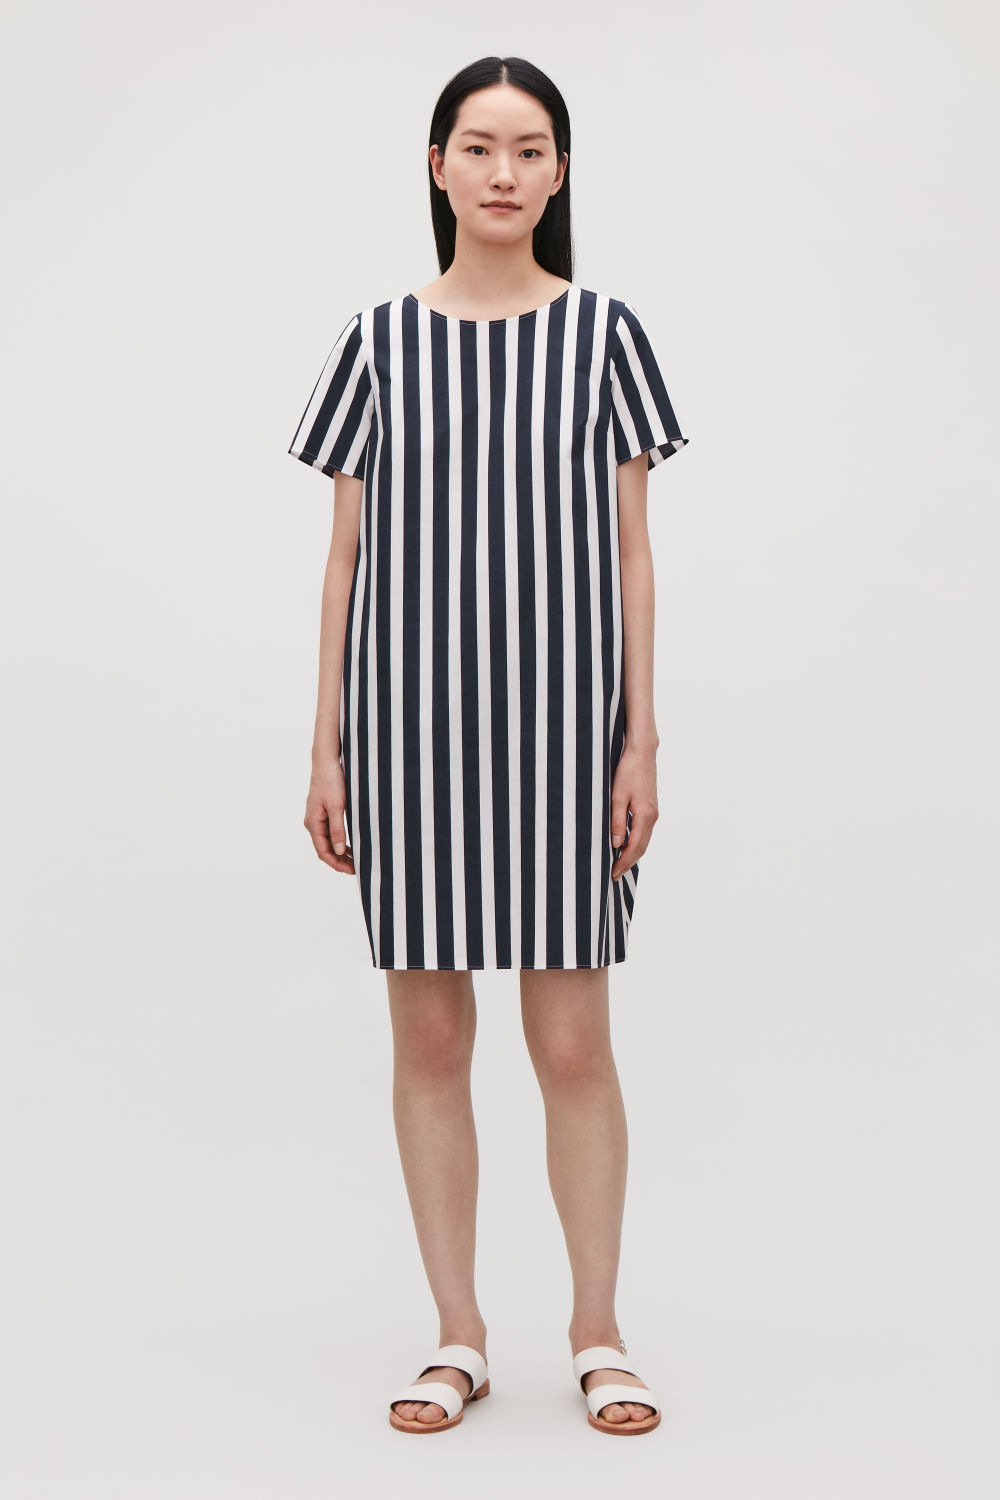 COS DRESS WITH DRAPED BACK,Navy \/ White